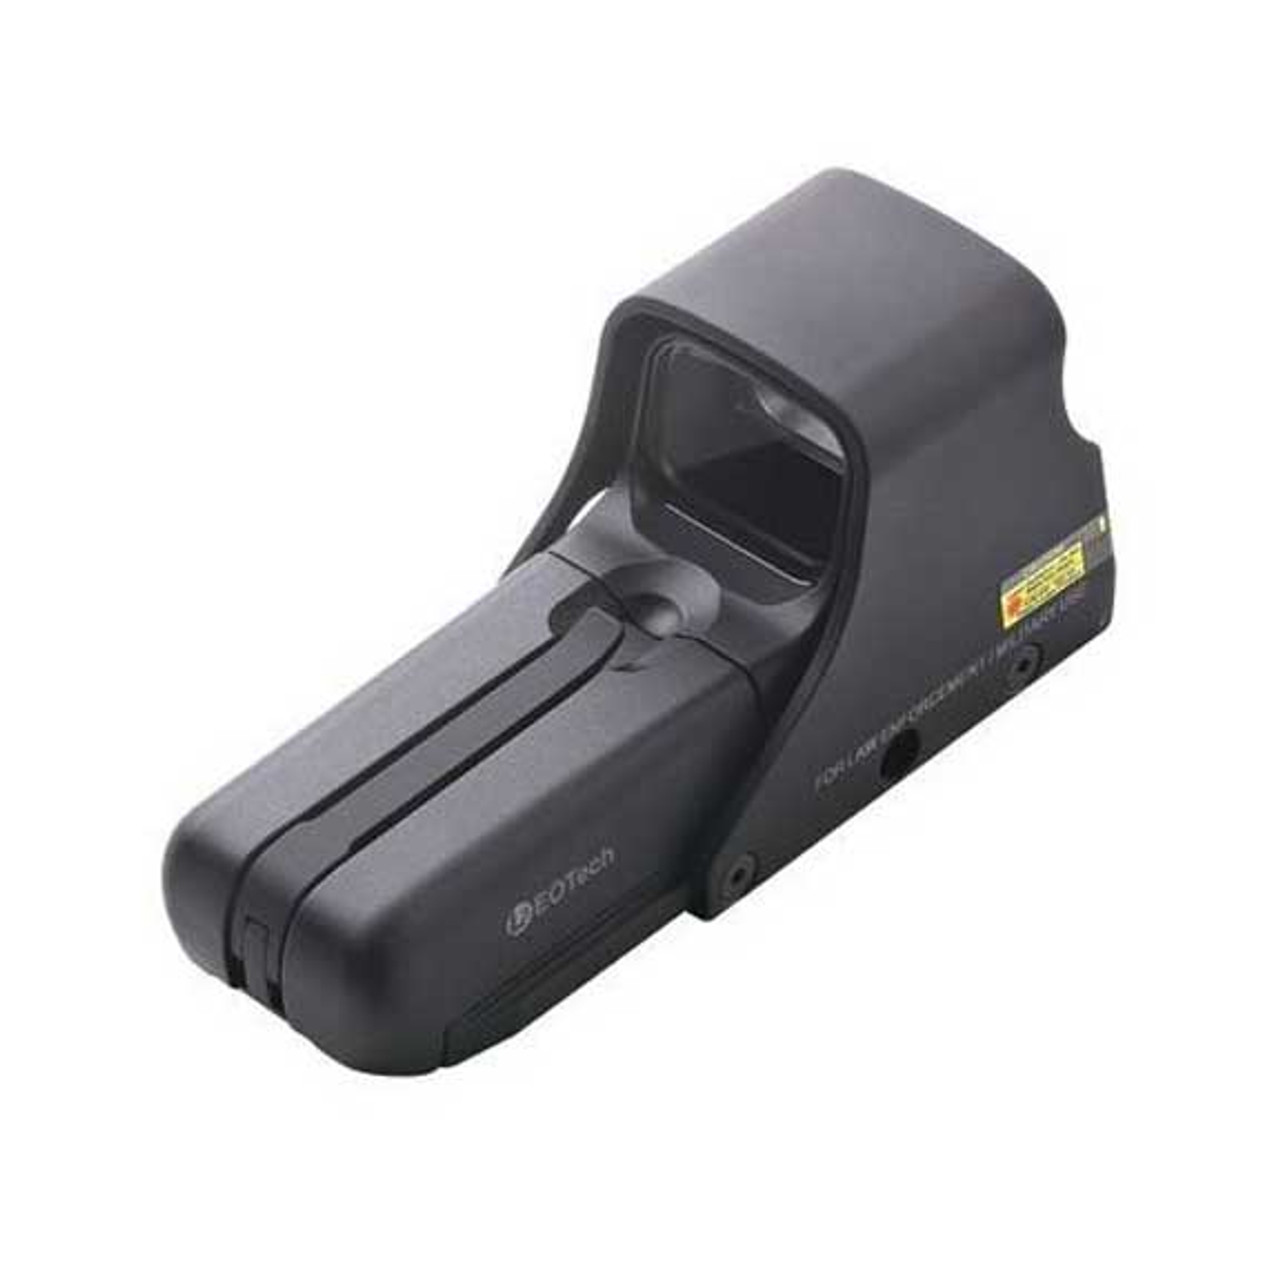 EOTech 552.A65/1 Tactical HOLOgraphic Weapons Sight